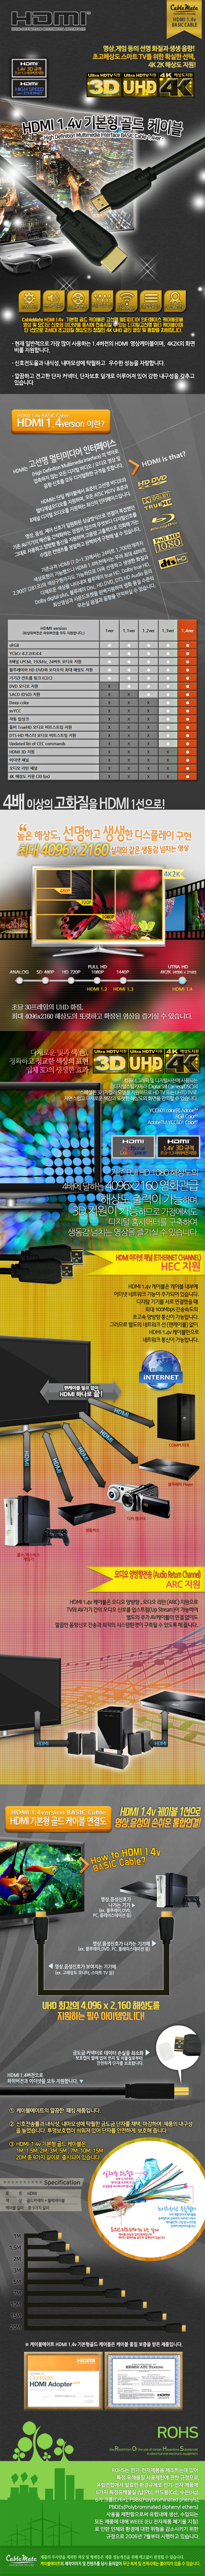 CABLEMATE HDMI Ver1.4 기본형 골드 케이블 (15m)